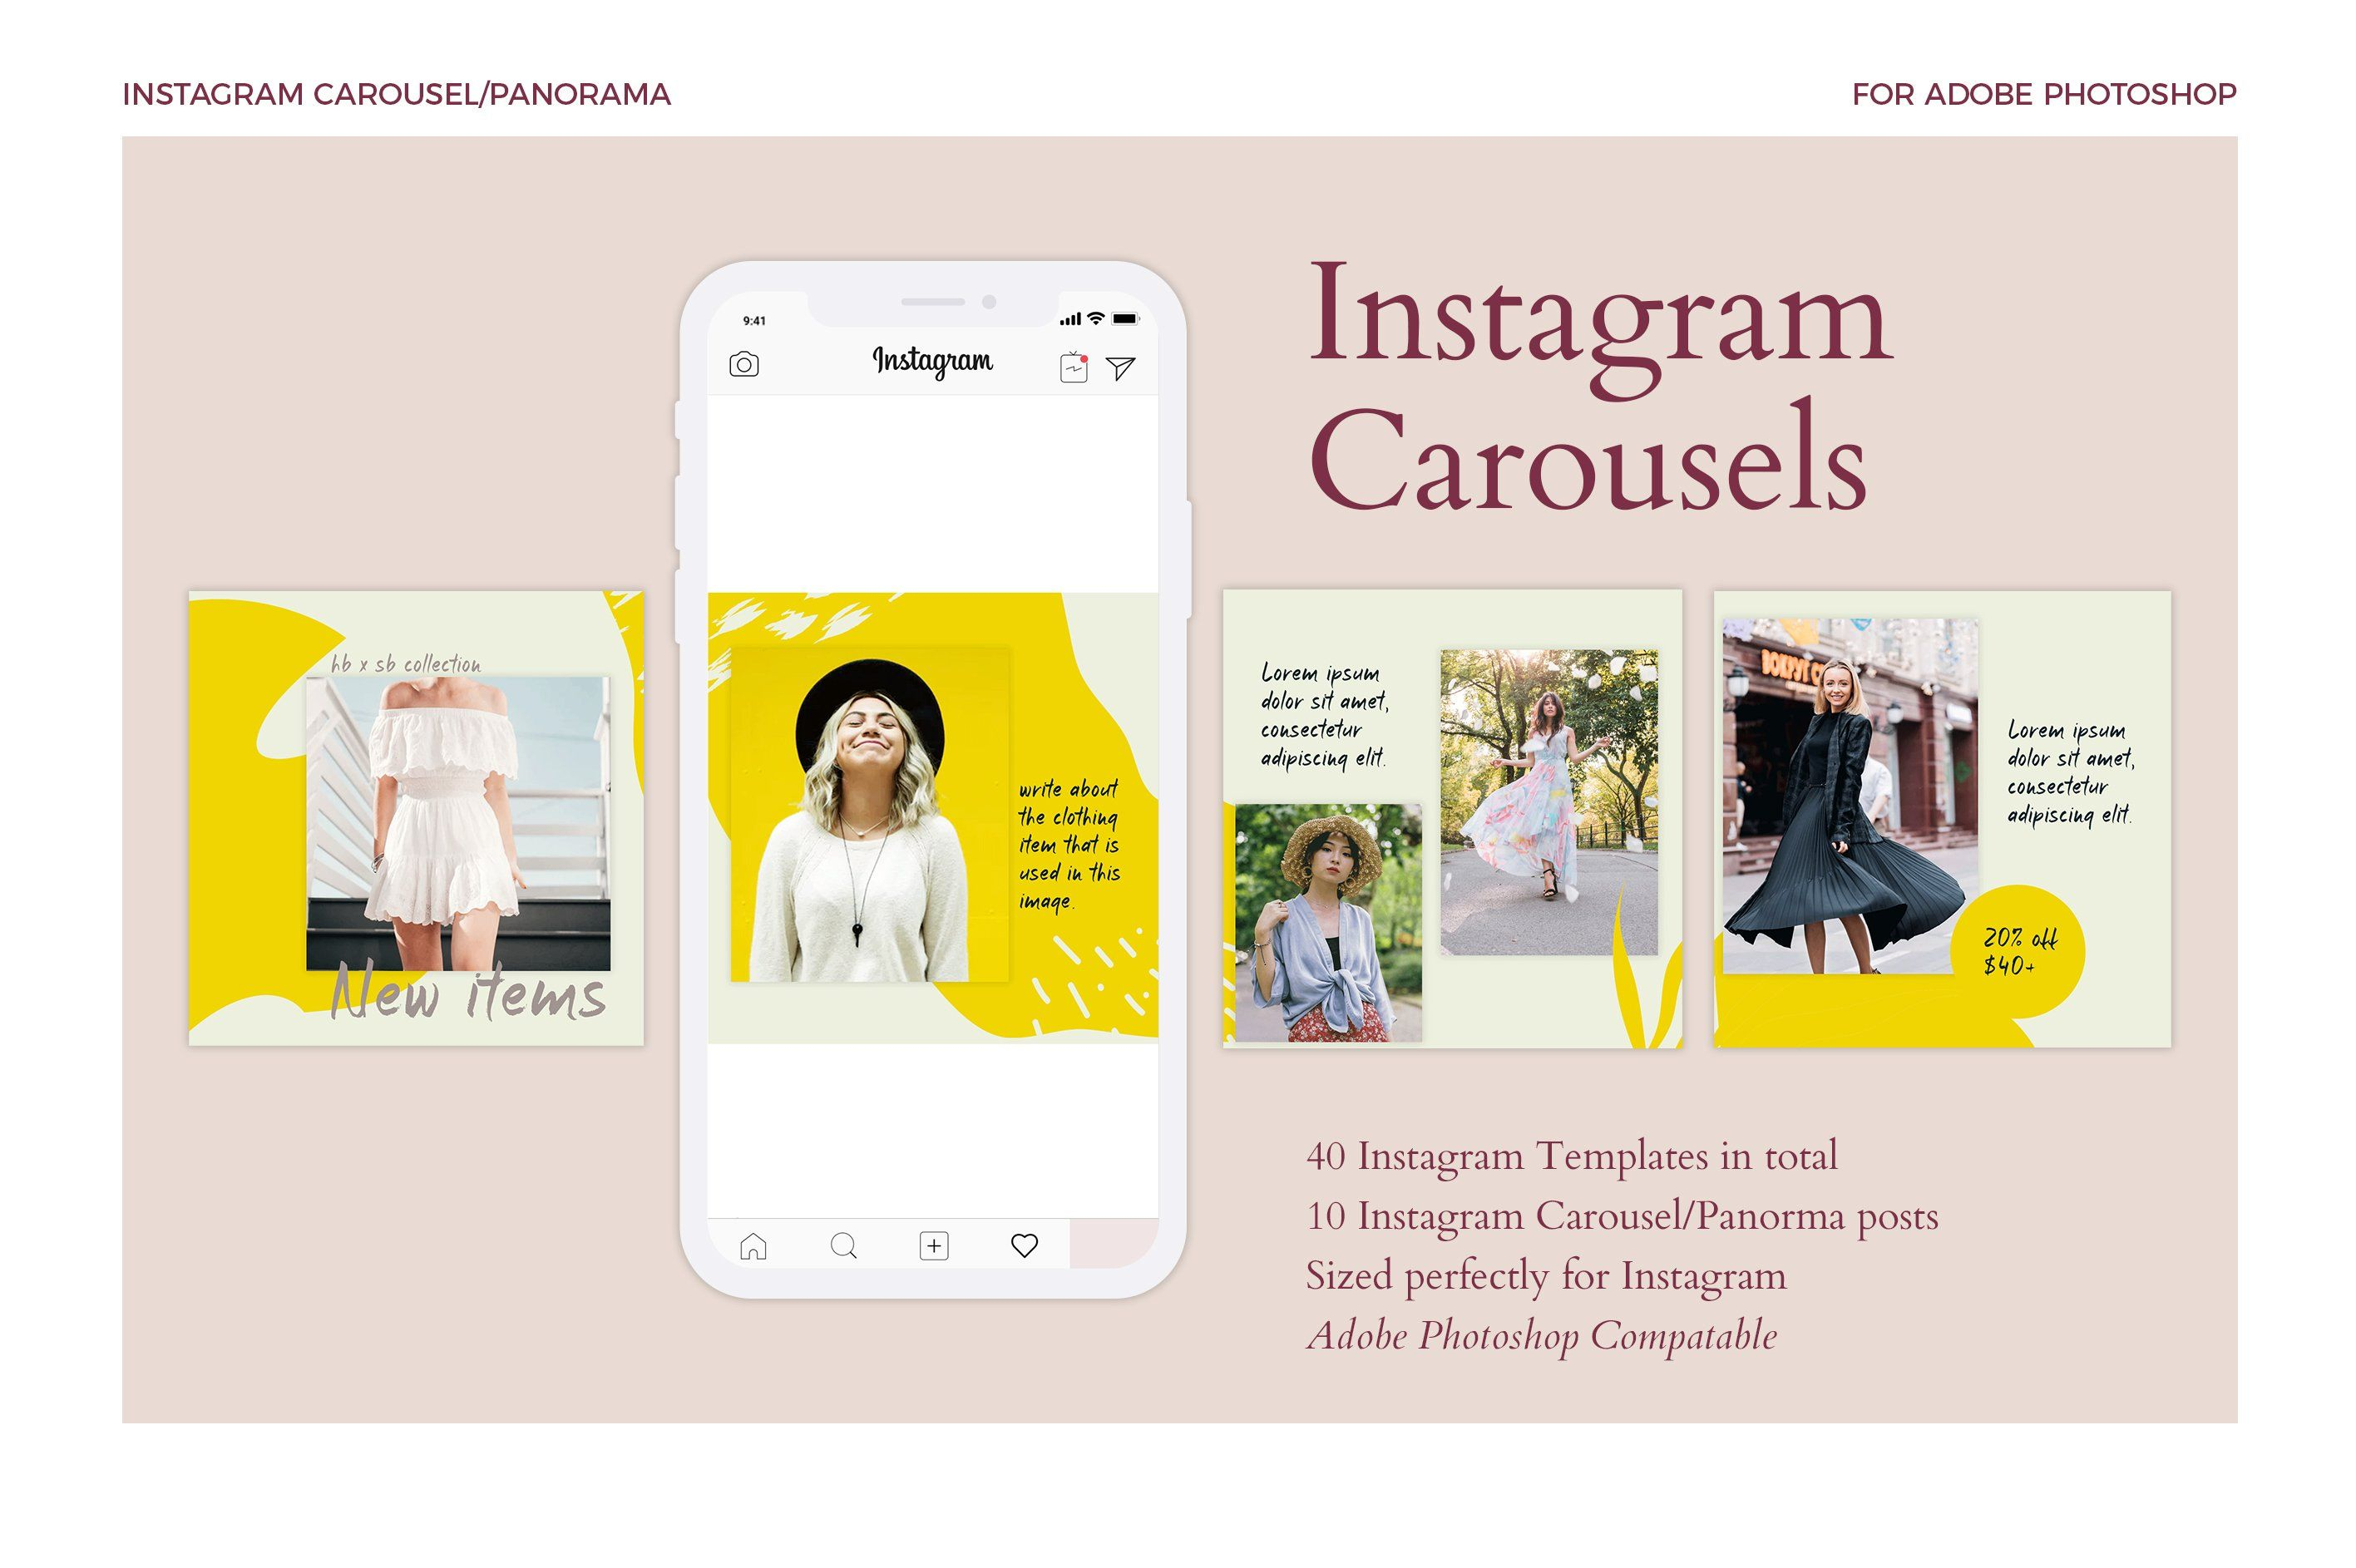 0f93369fd1c946e9f6a6cd8ff35cbf0c - How To Get An Instagram Post Out Of Archive